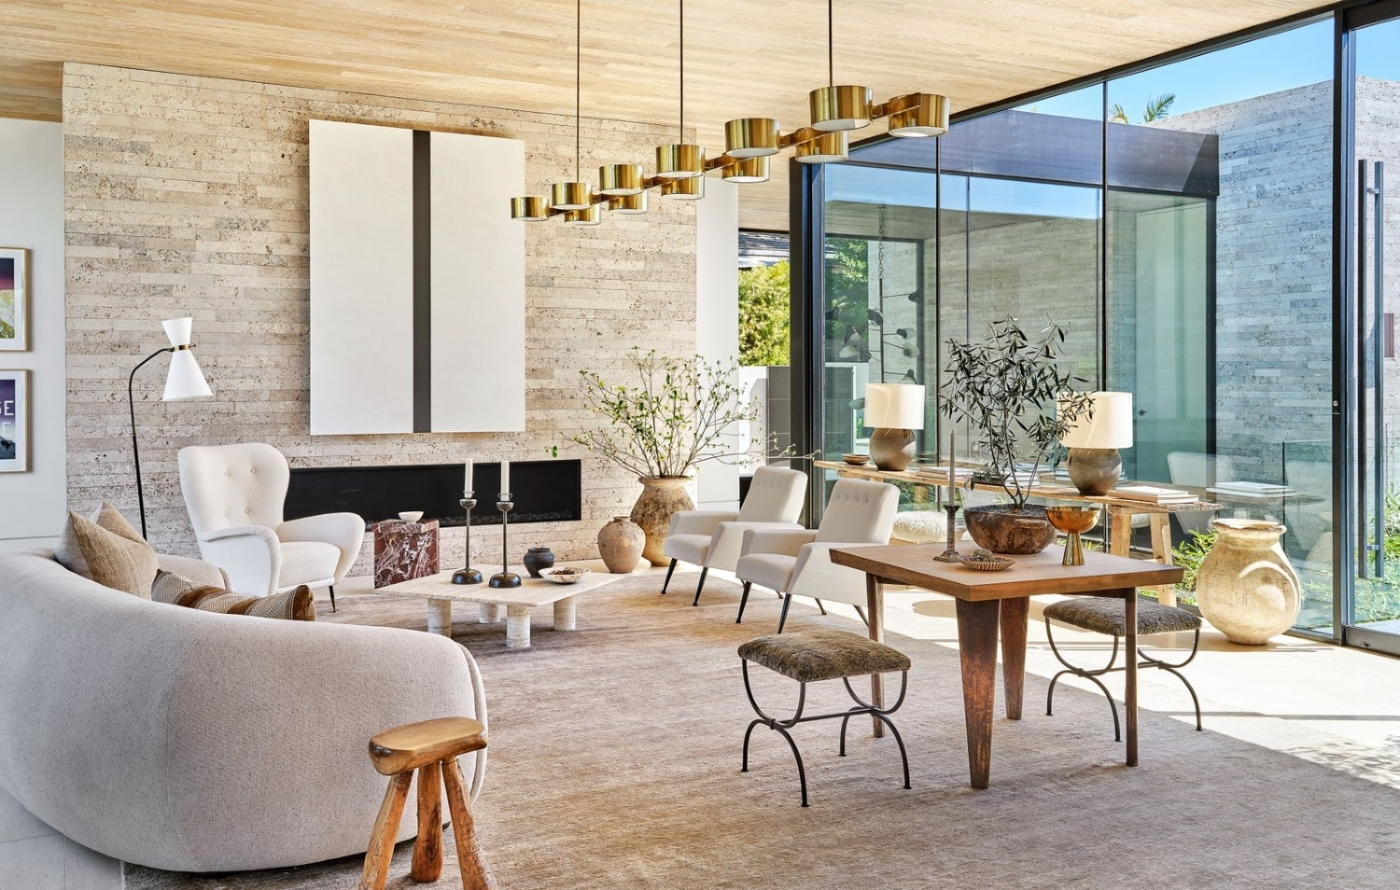 Nate Berkus And Jeremiah Brent Design A Stylish Los Angeles Home ft